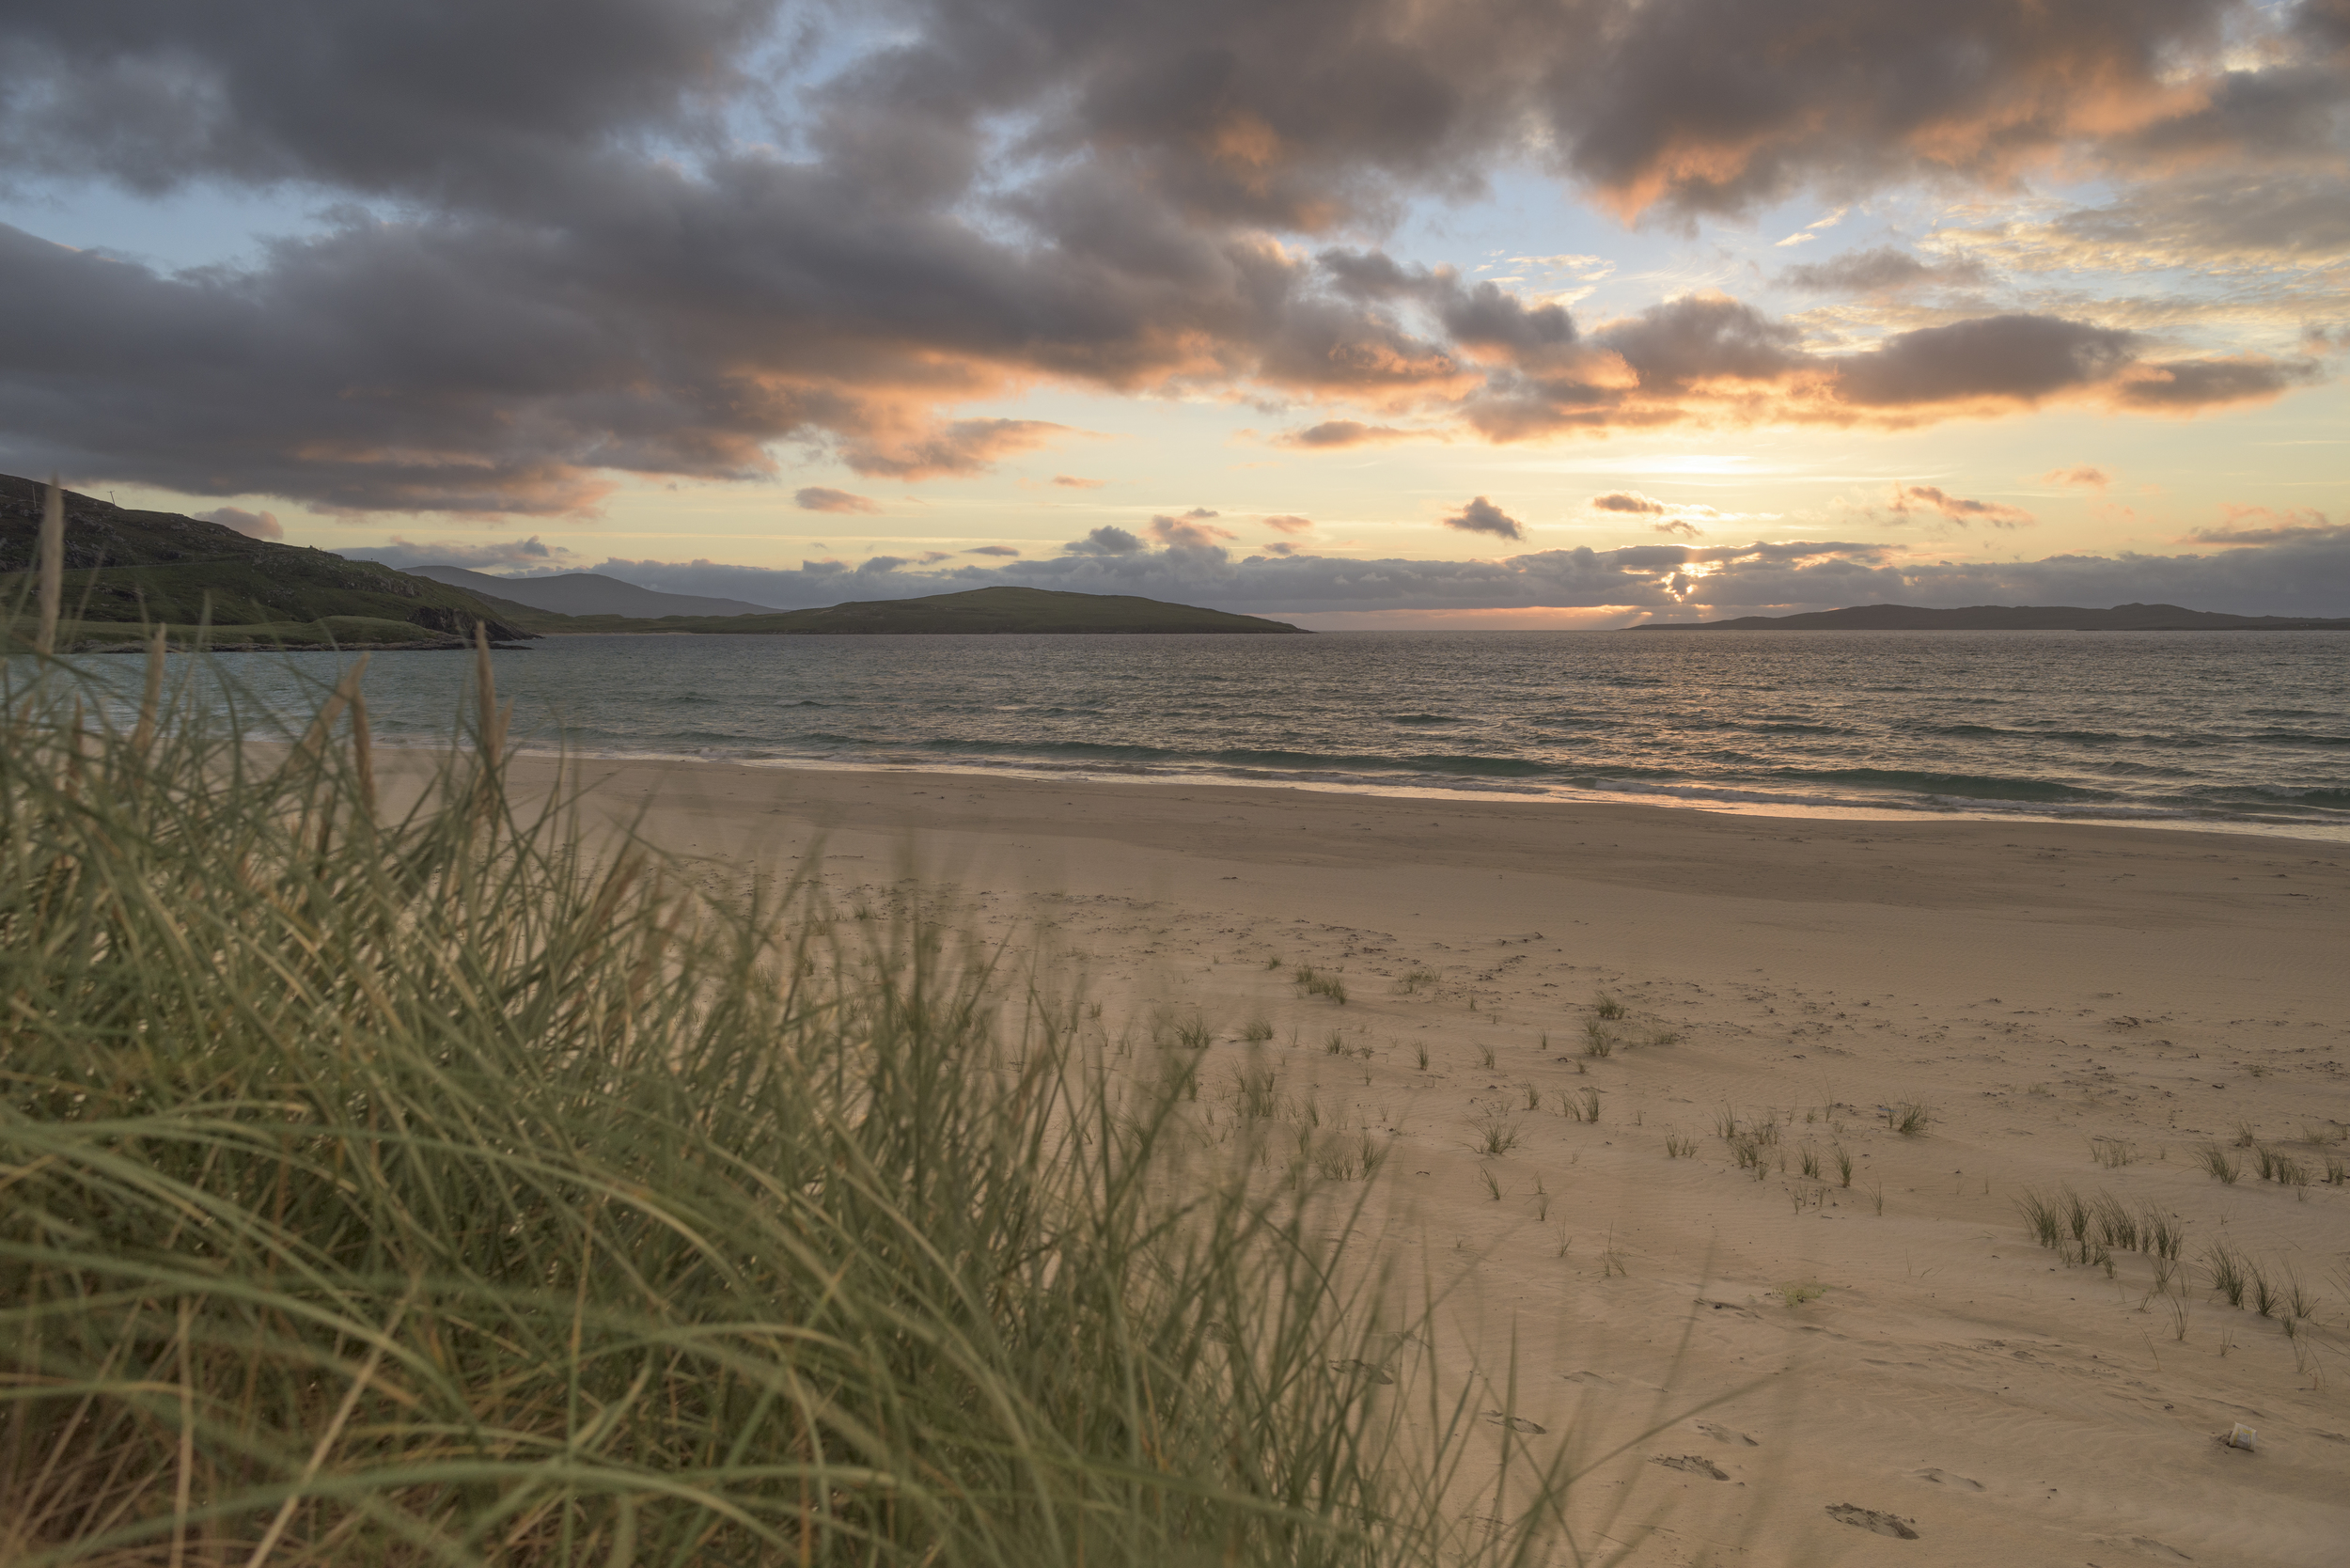 Looking west towards the sunset from Traigh Sheileboist, South Harris.